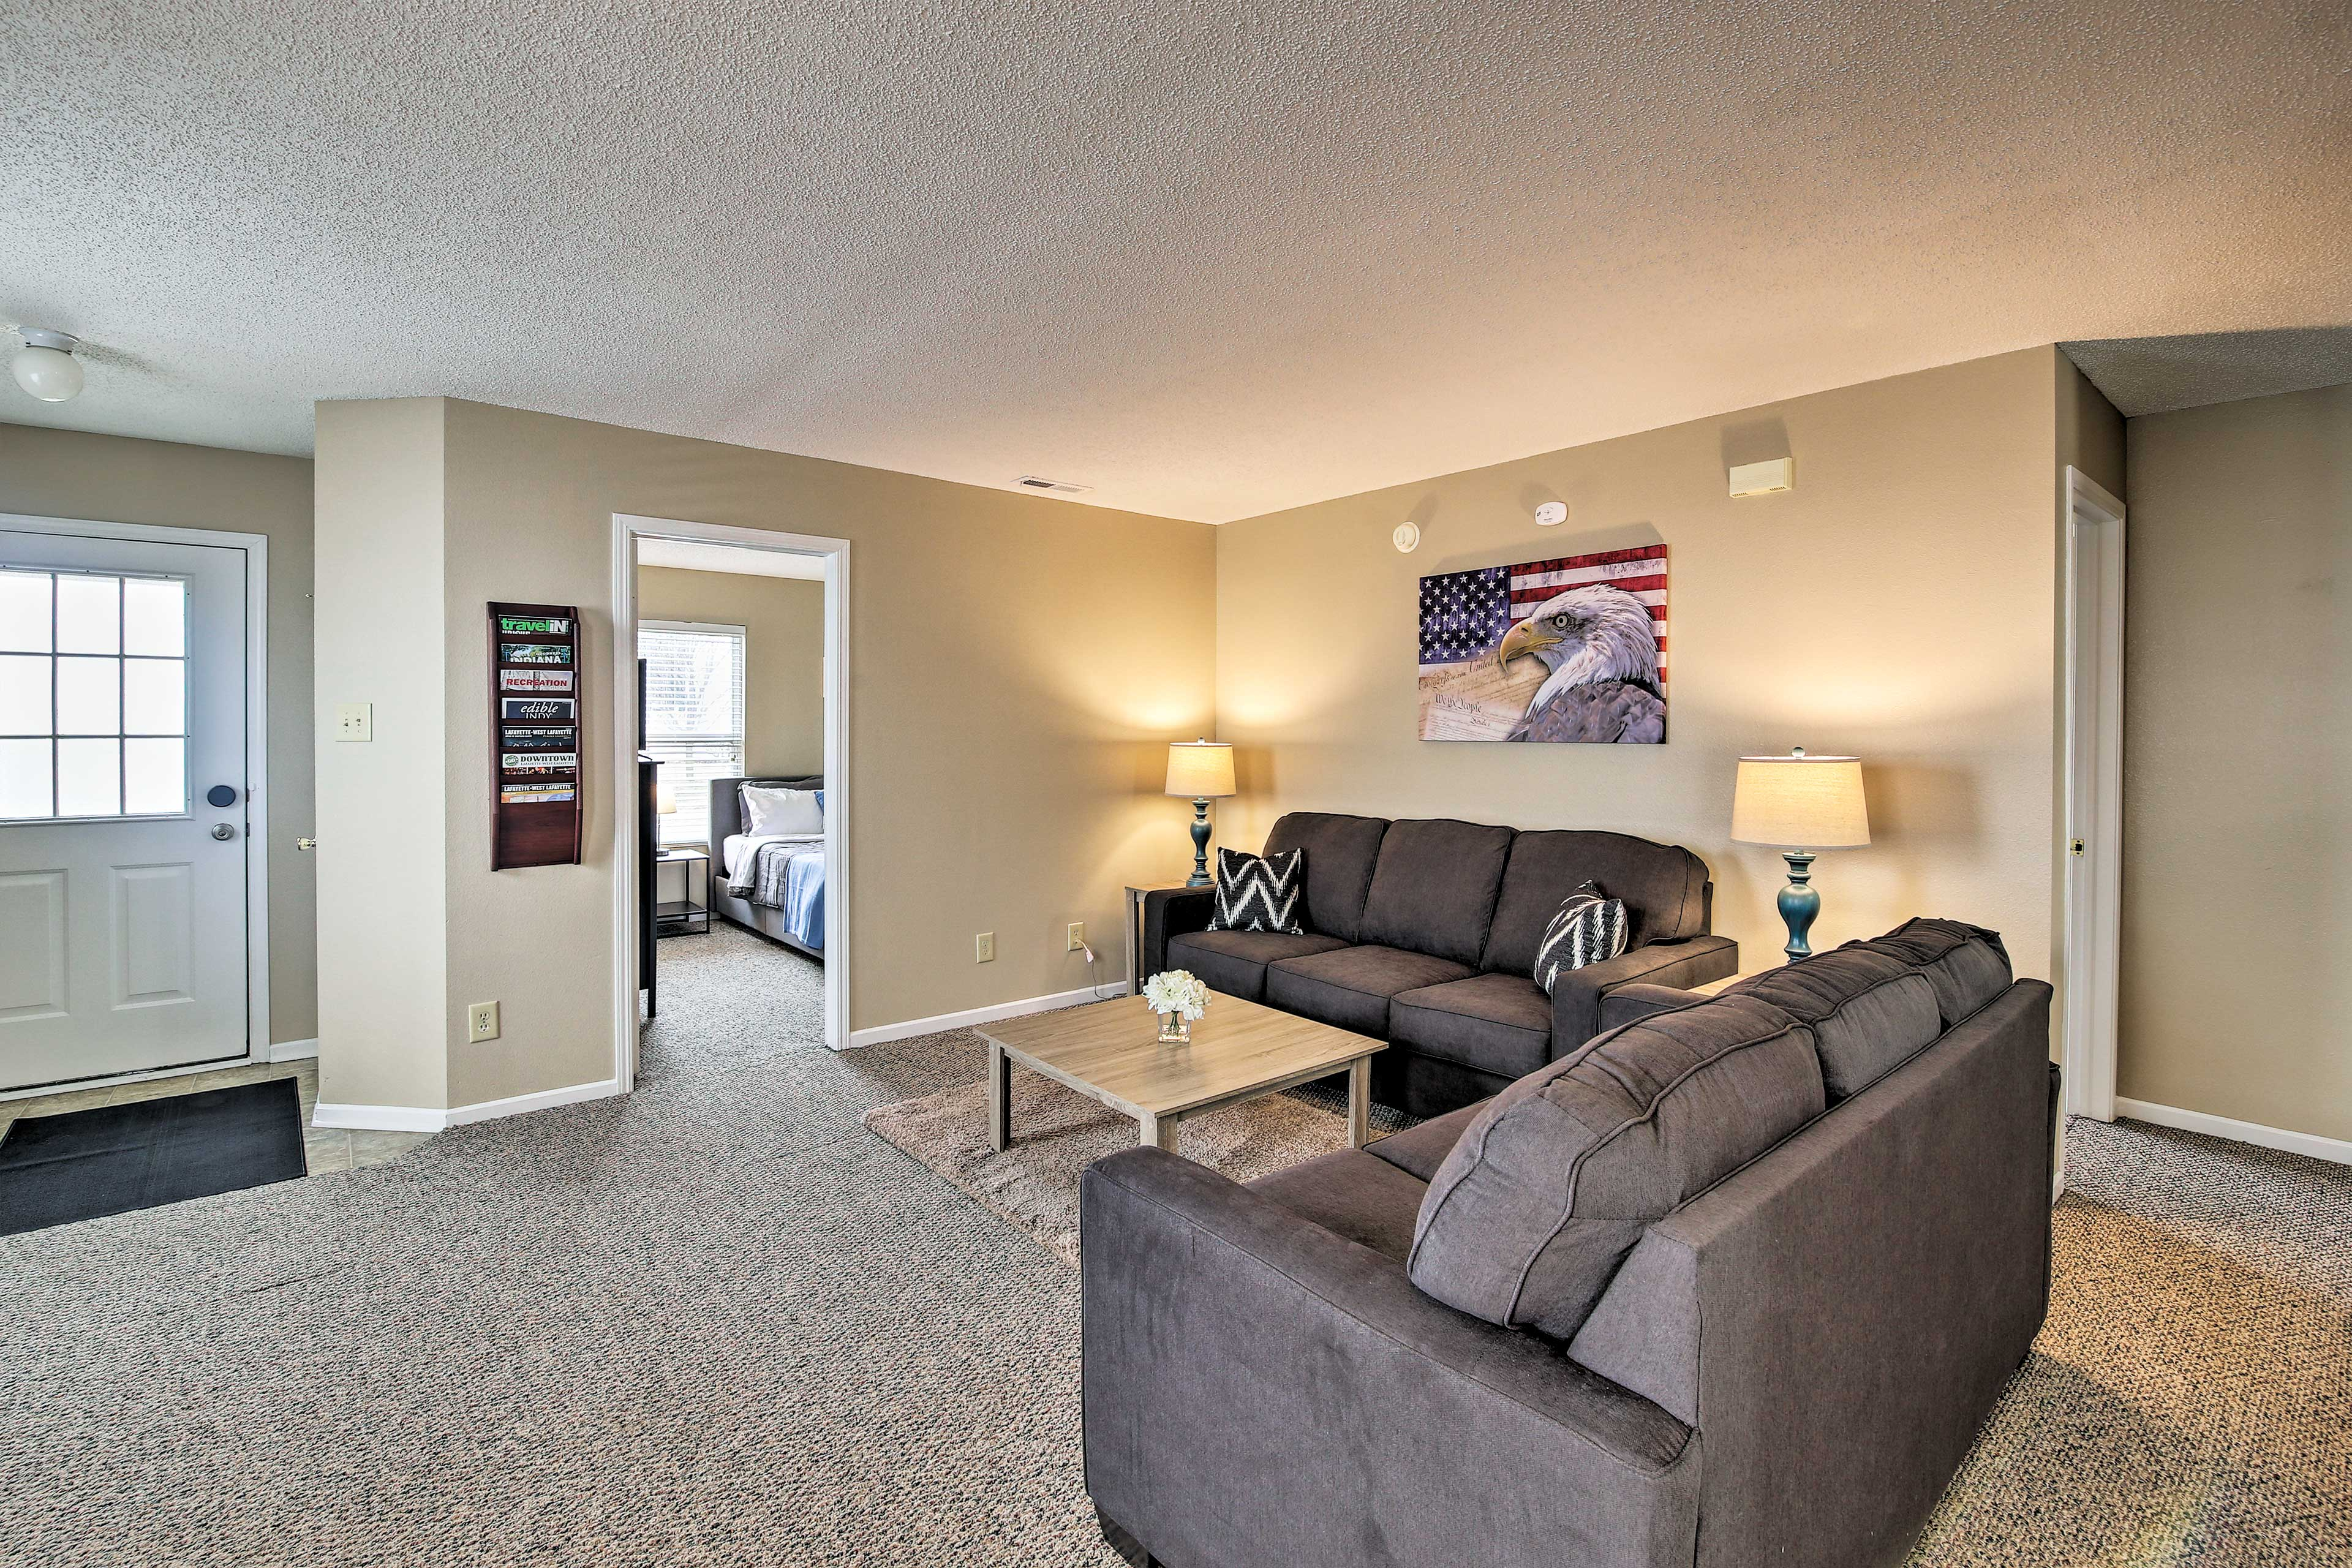 The living room features 2 sleeper sofas.